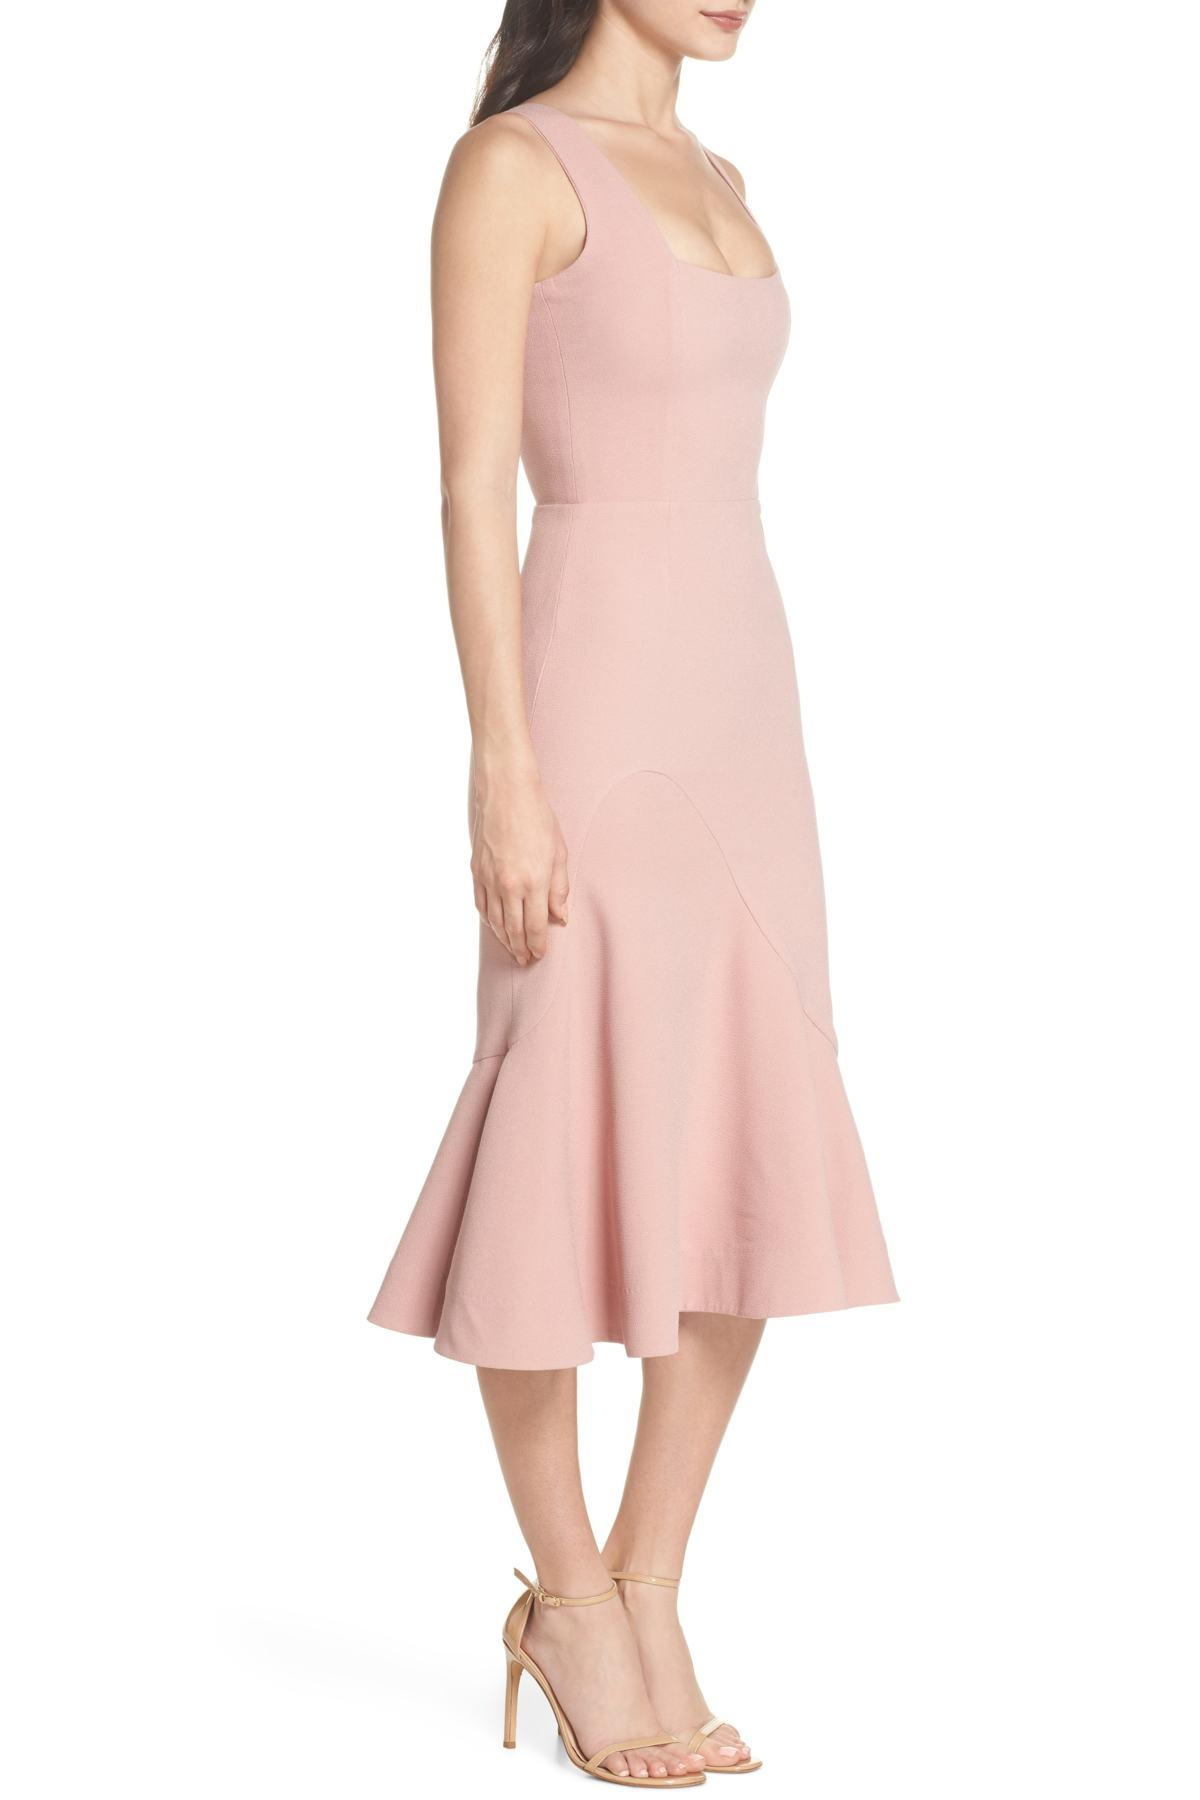 d1cccfdb6004 Gallery. Previously sold at: Nordstrom, Nordstrom Rack · Women's Pink  Dresses Women's Tea Dresses